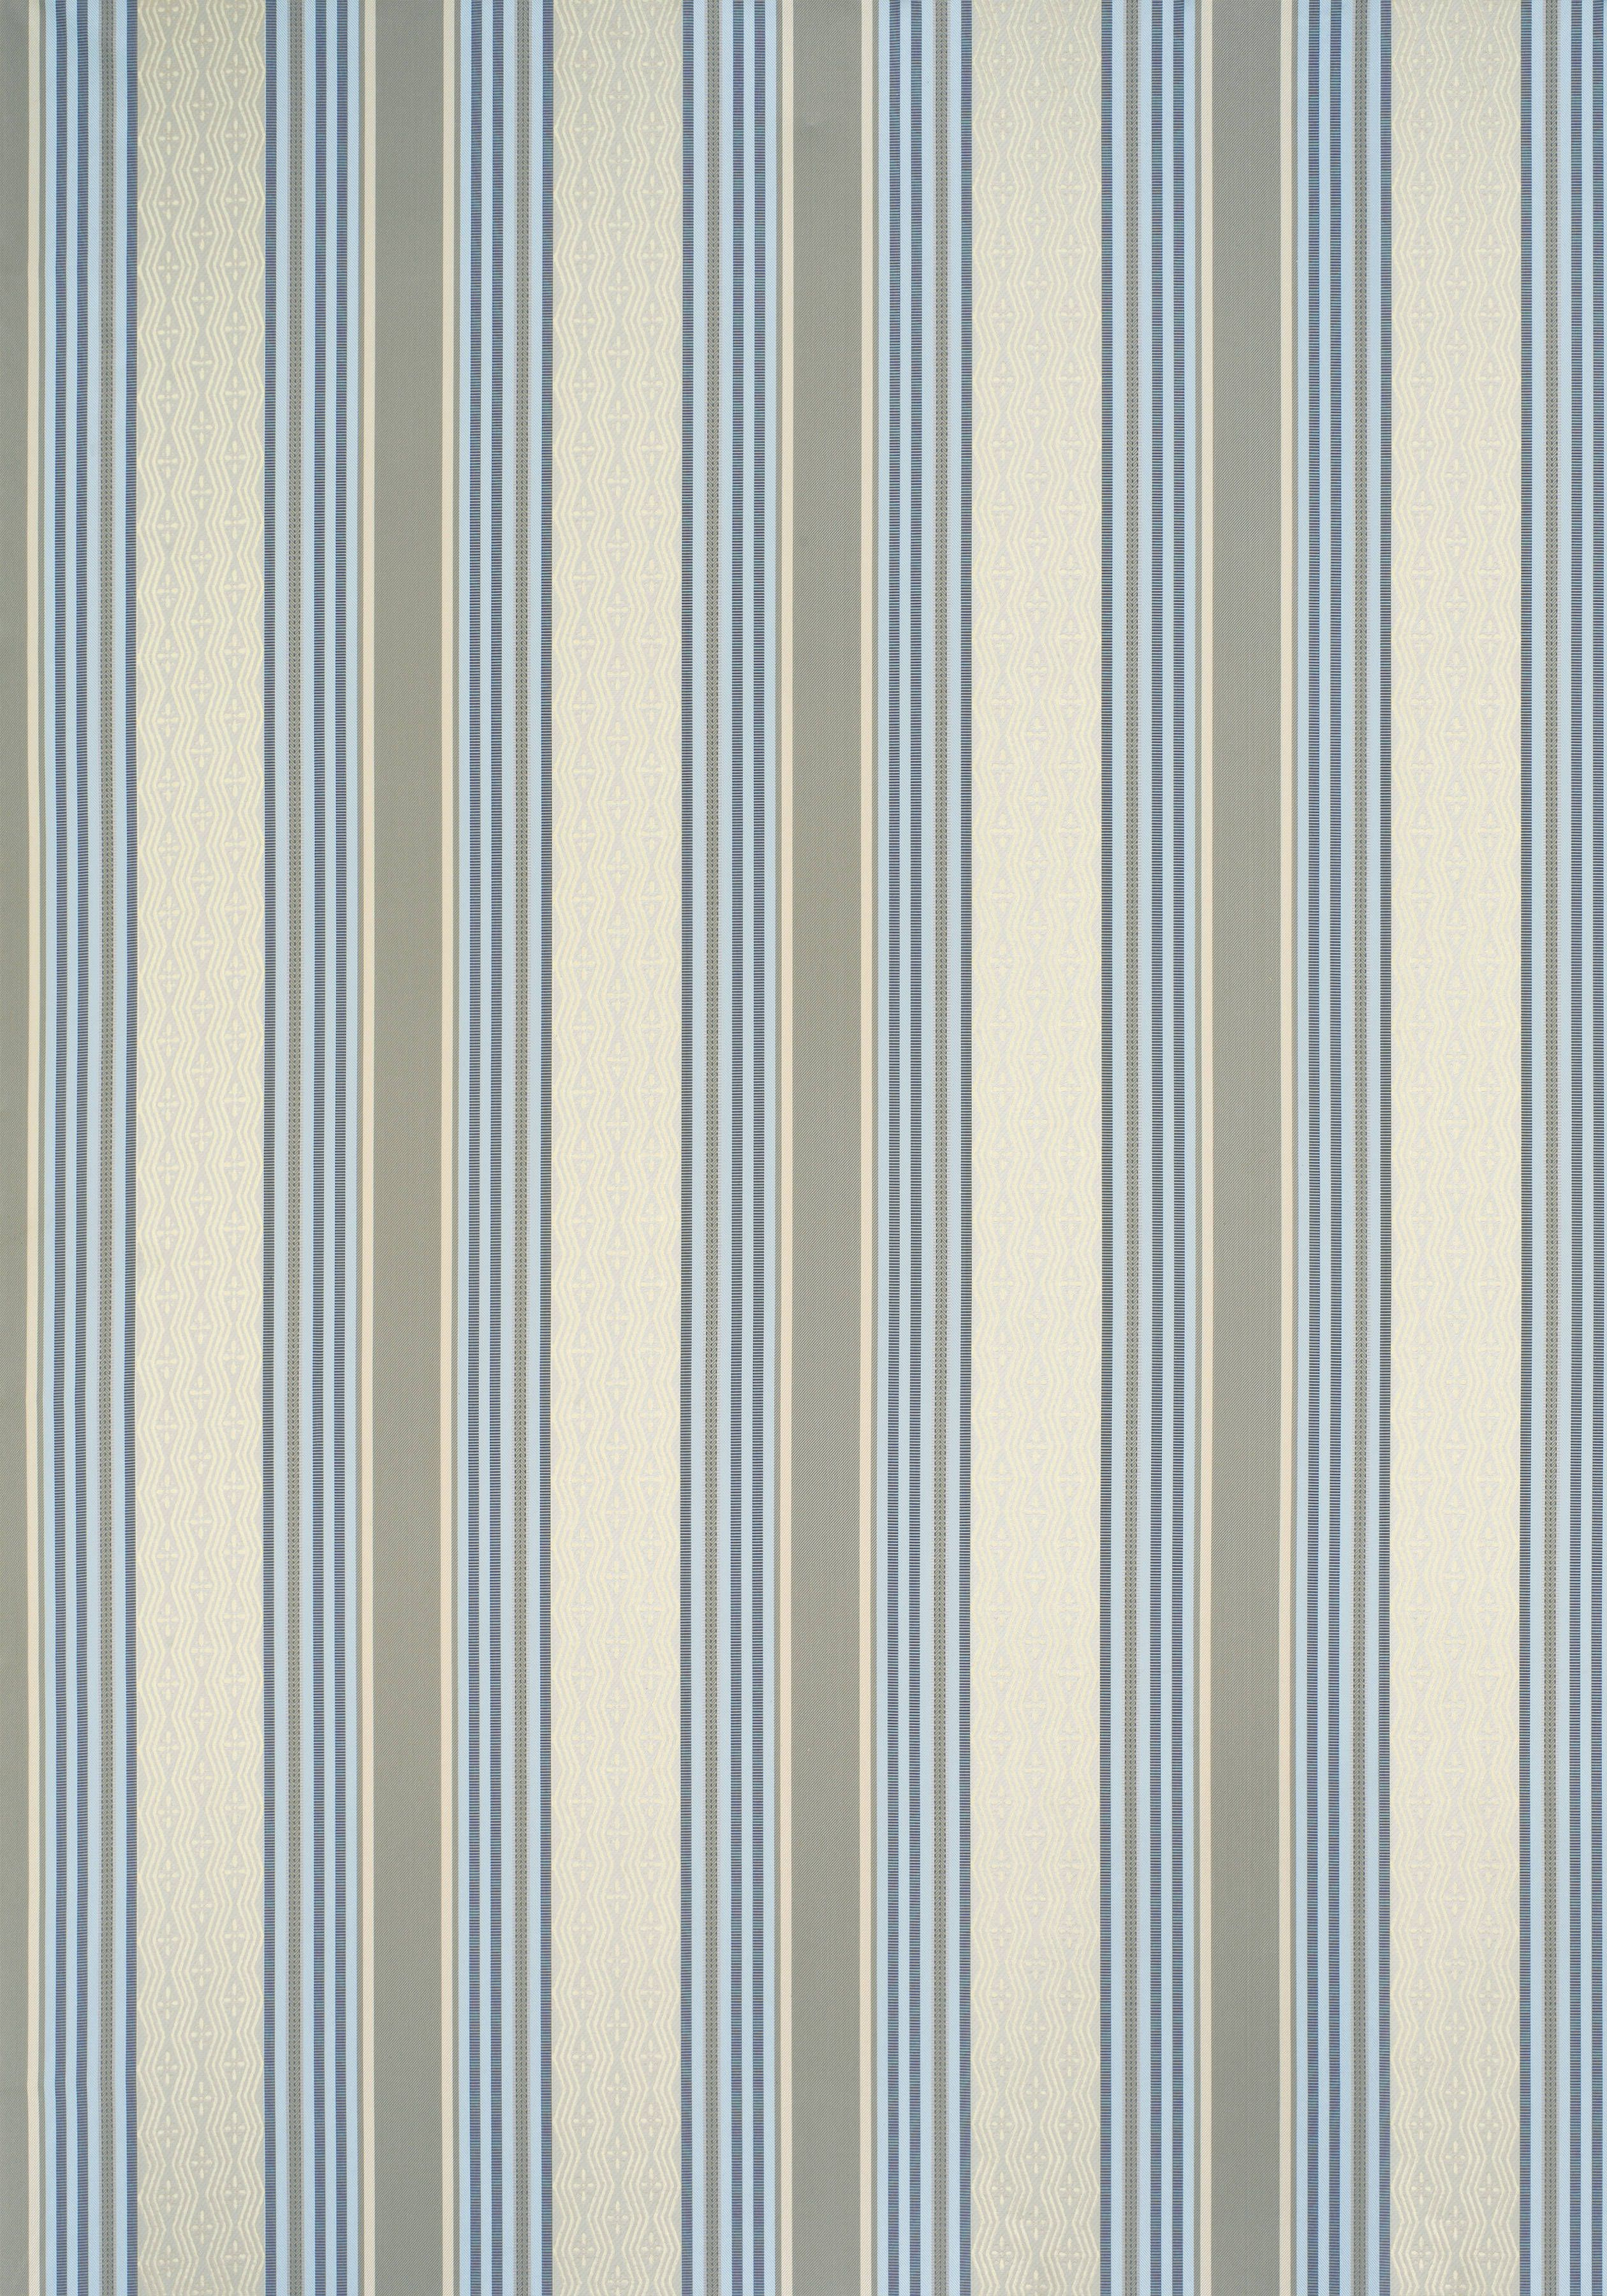 Sunny Striped Fabrics From France Remodelista French Fabric